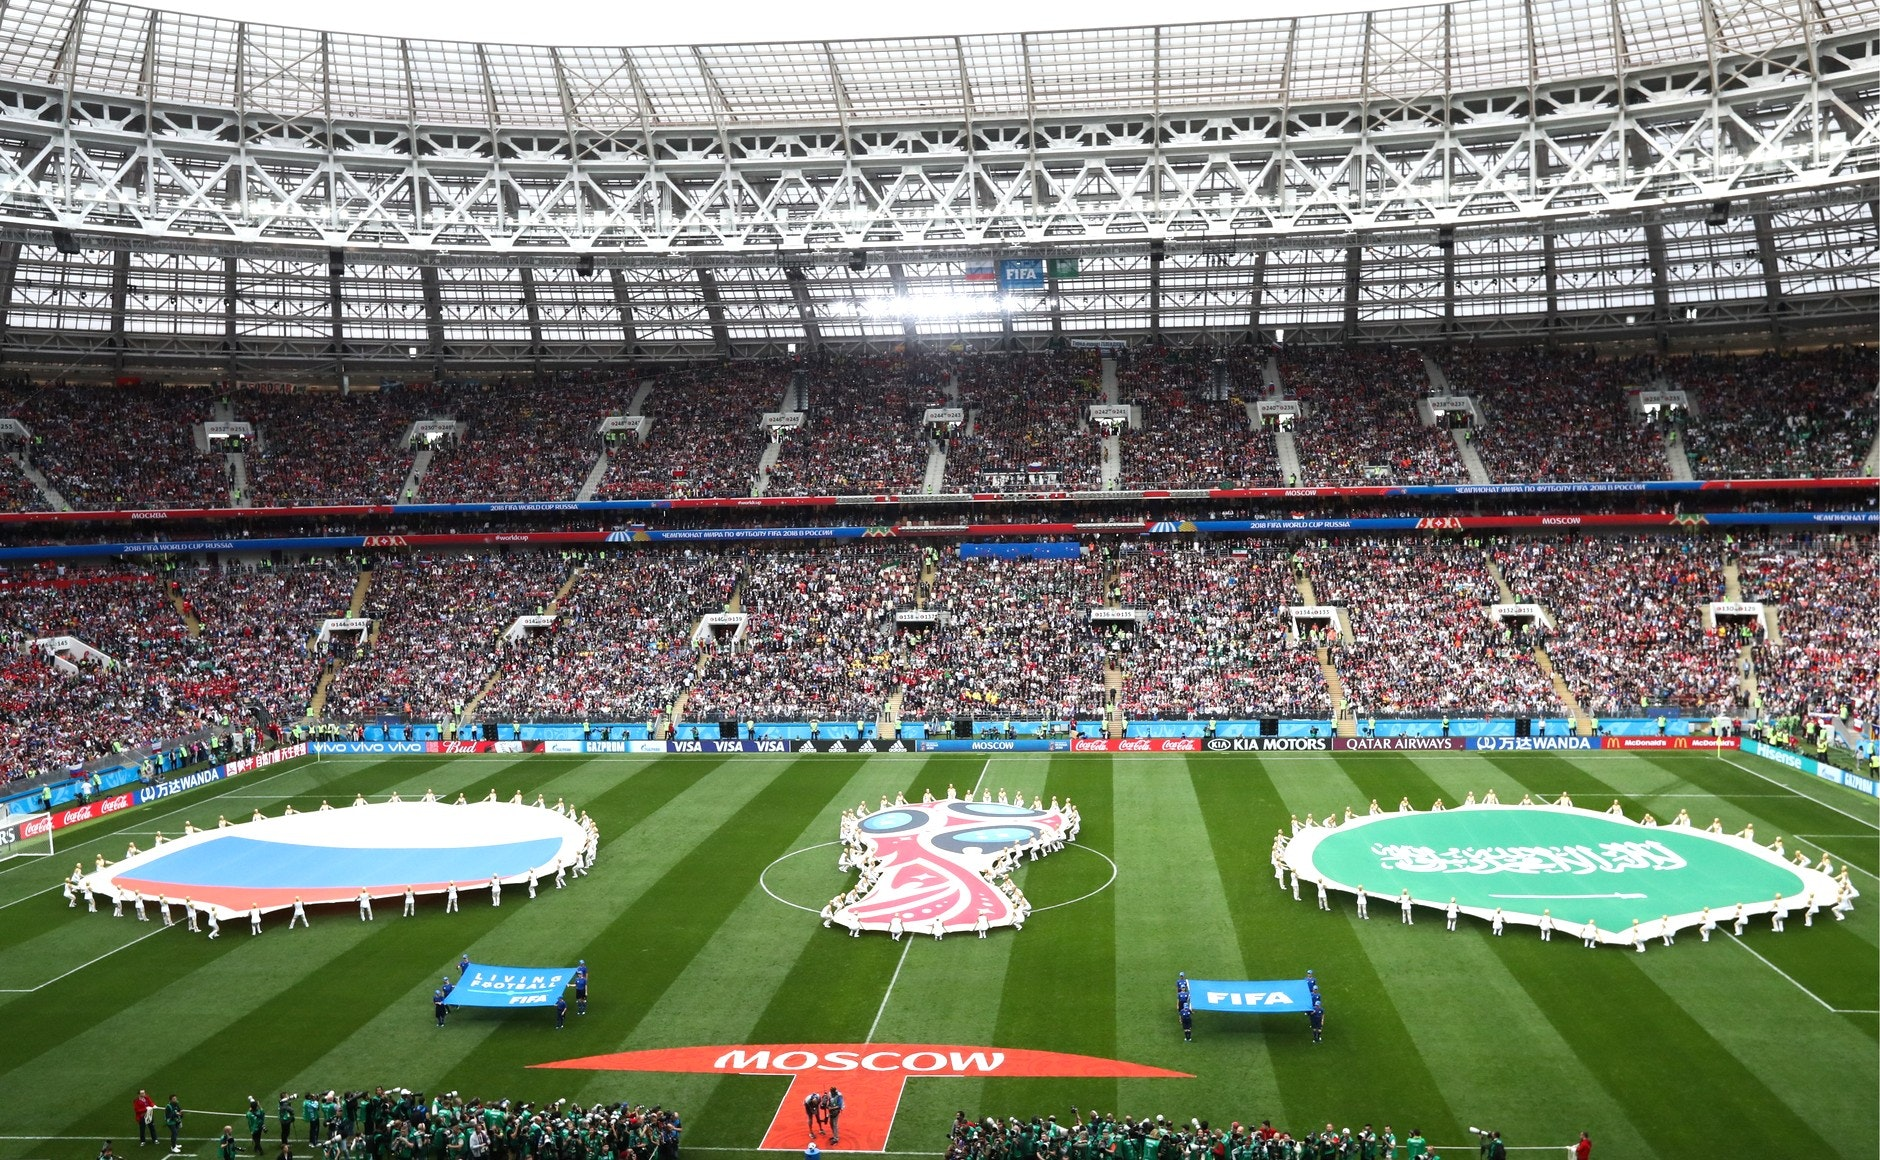 2018 fifa world cup opening ceremony  2018 06 14  15